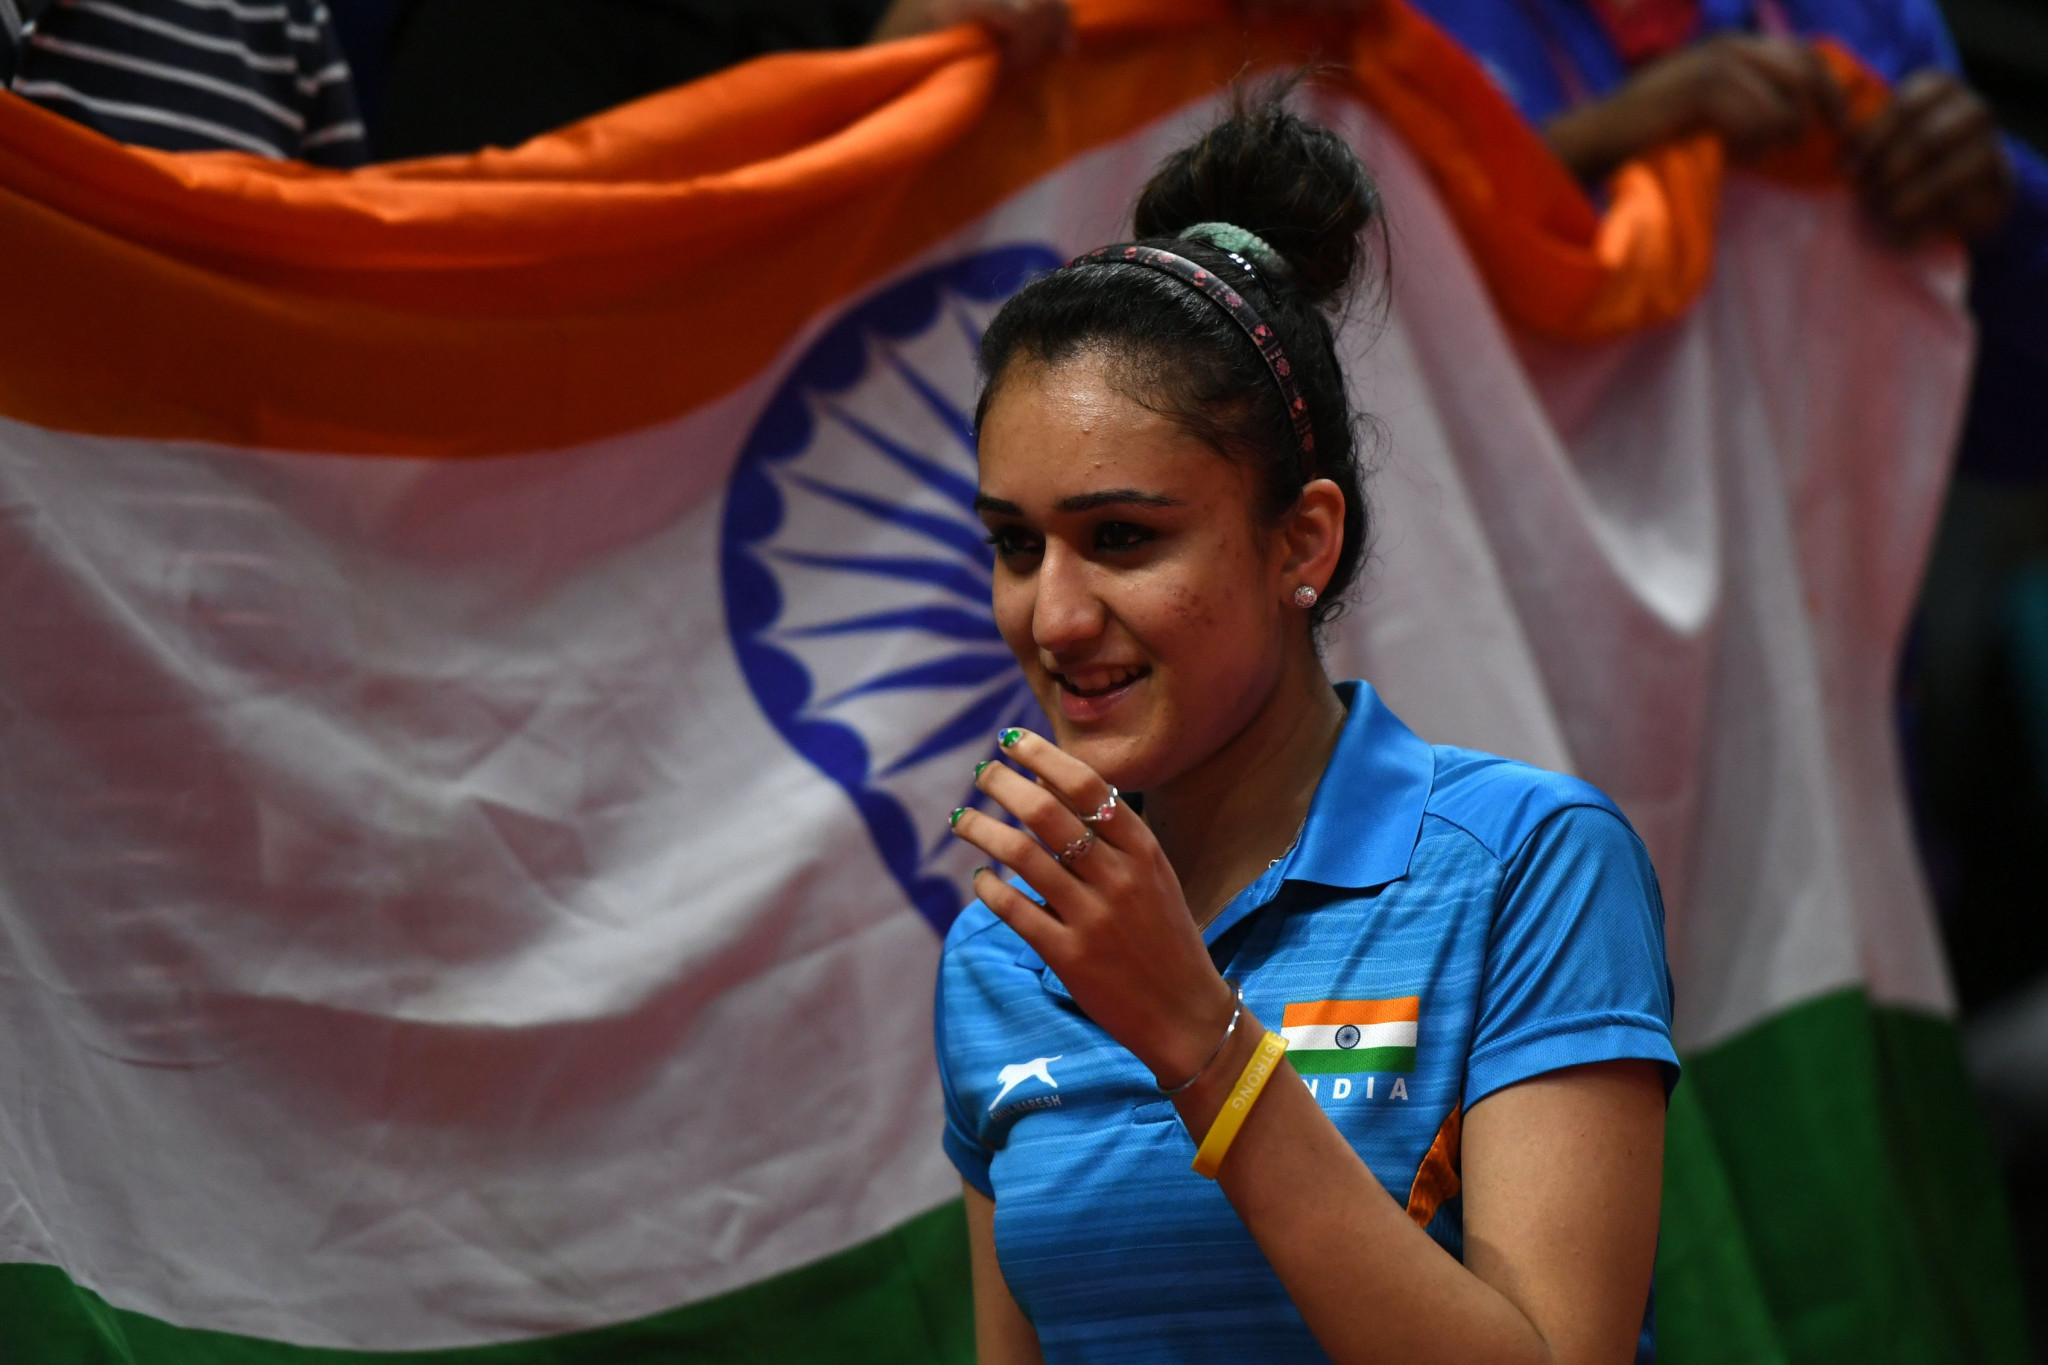 Batra clinches historic table tennis gold for India at Gold Coast 2018